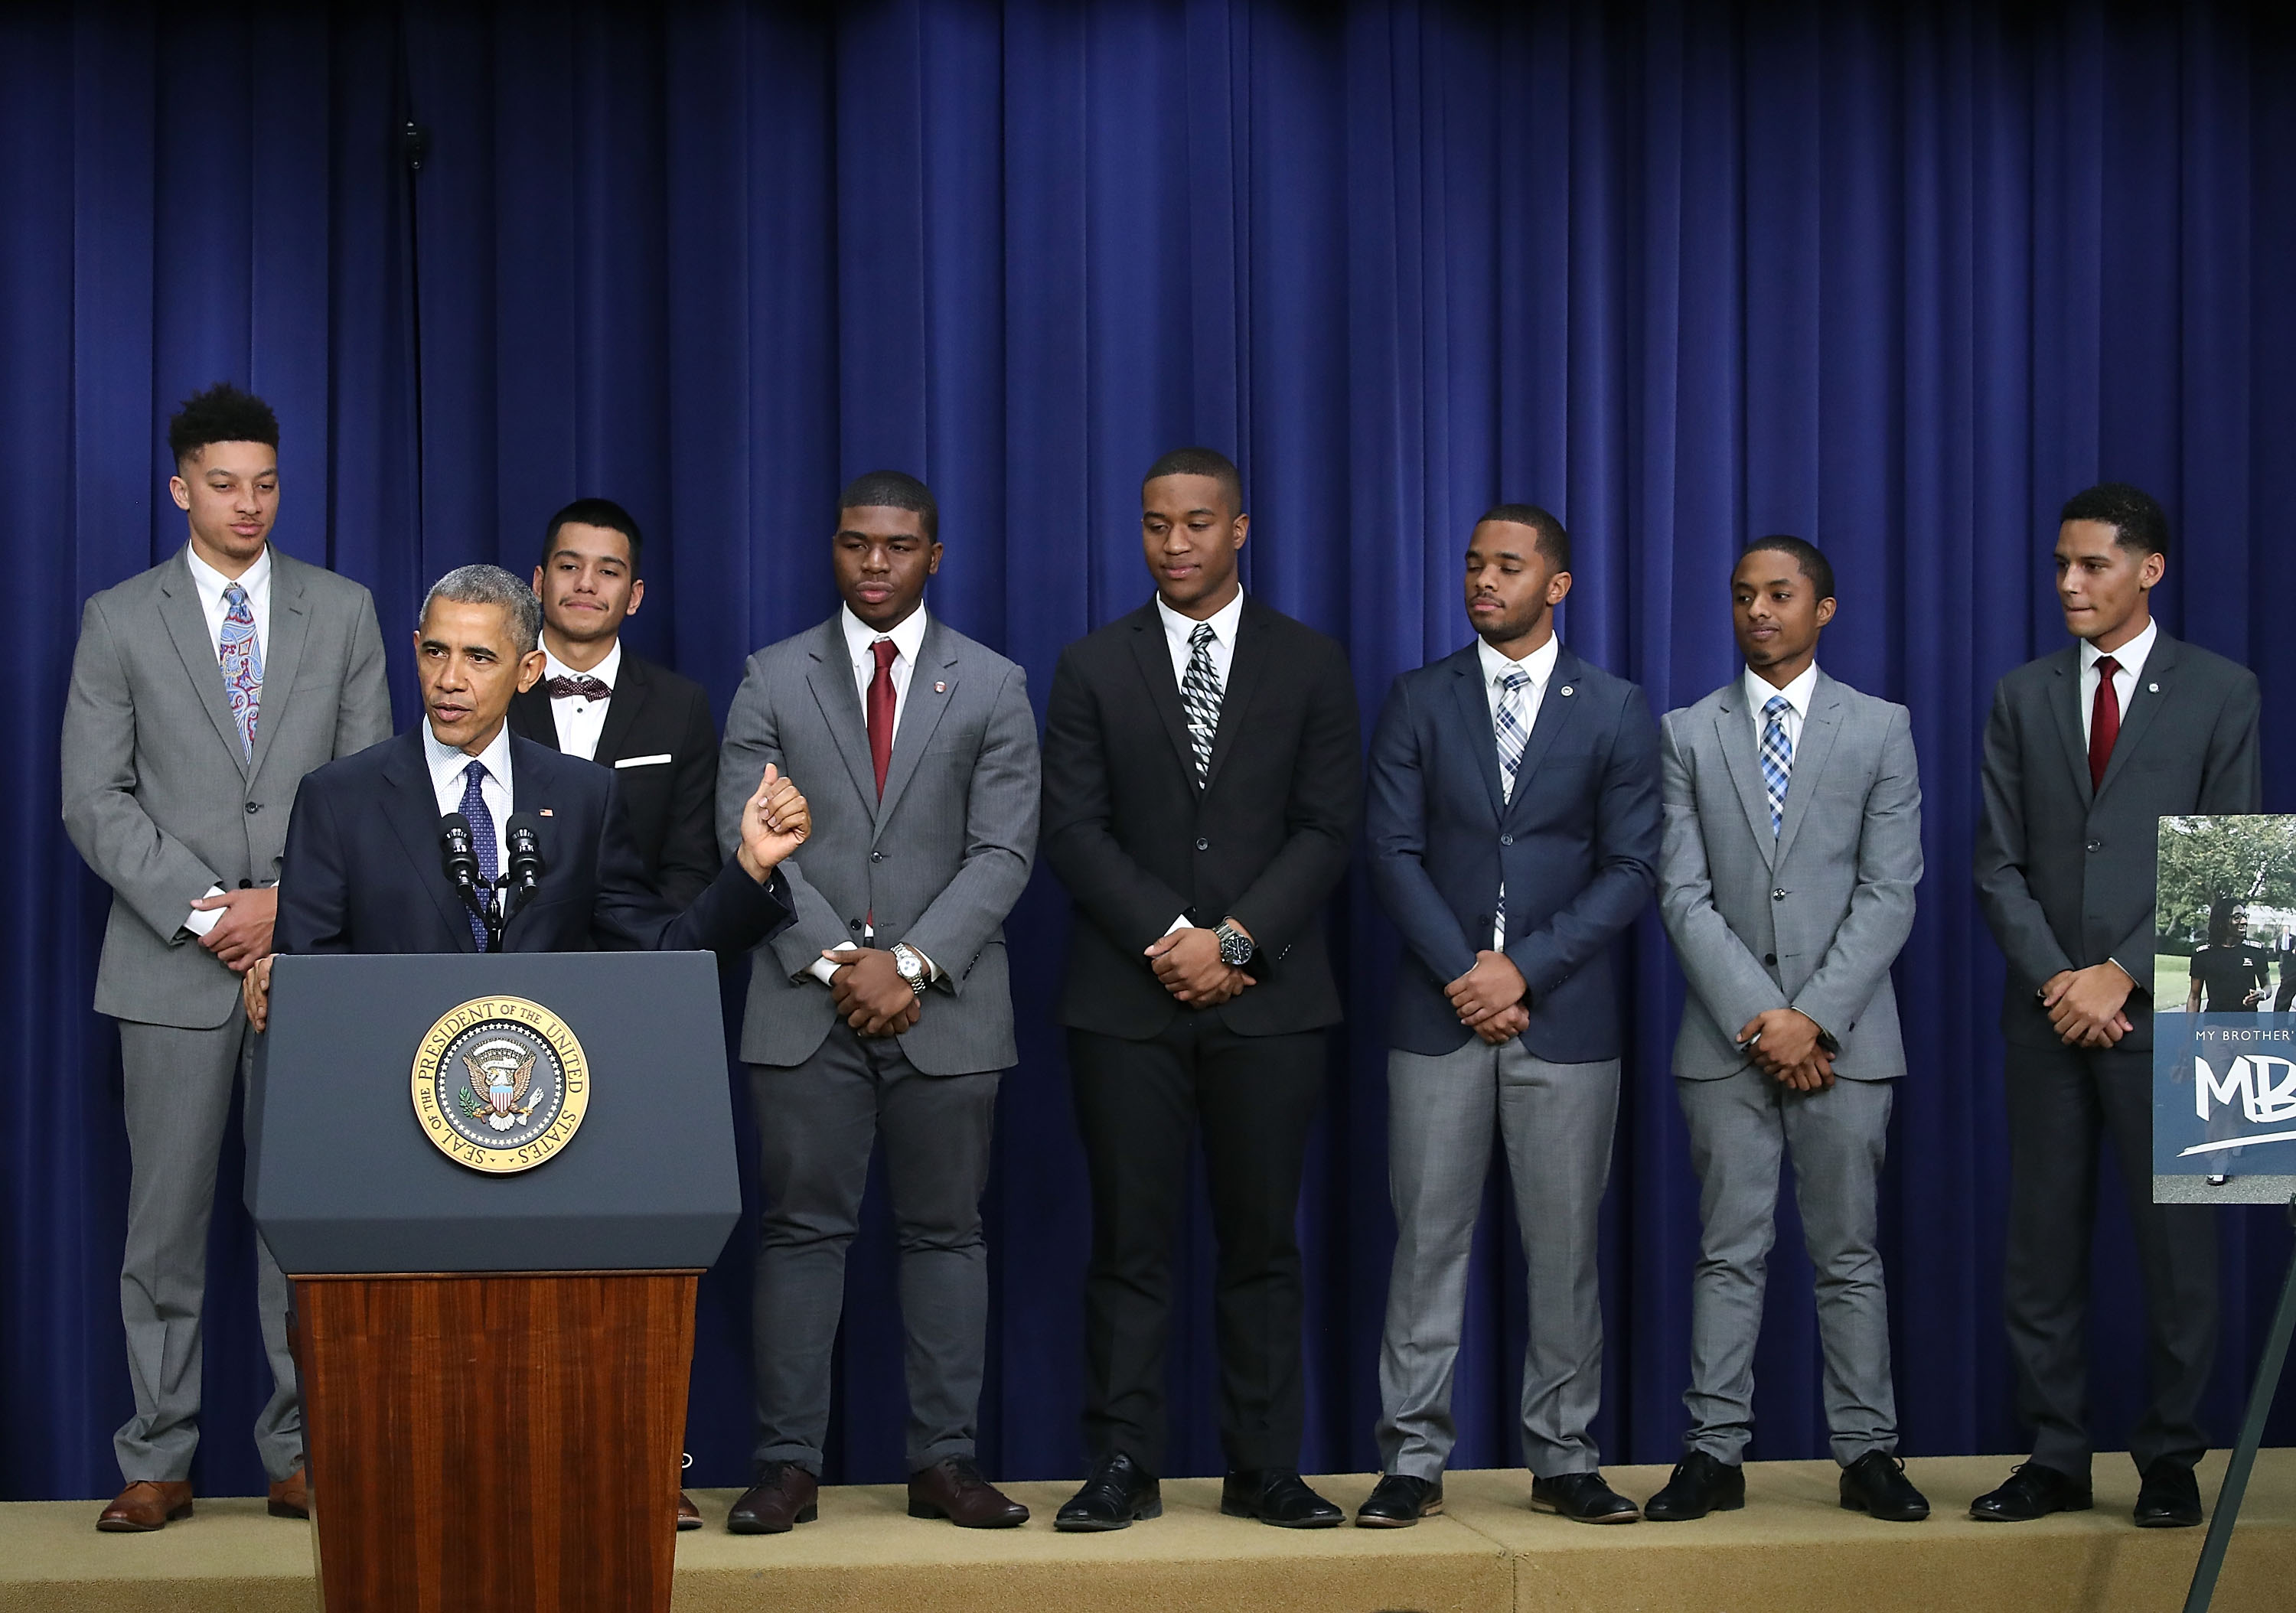 President Barack Obama speaks during the annual My Brother's Keeper event at the White House, Dec. 14, 2016 in Washington, DC.